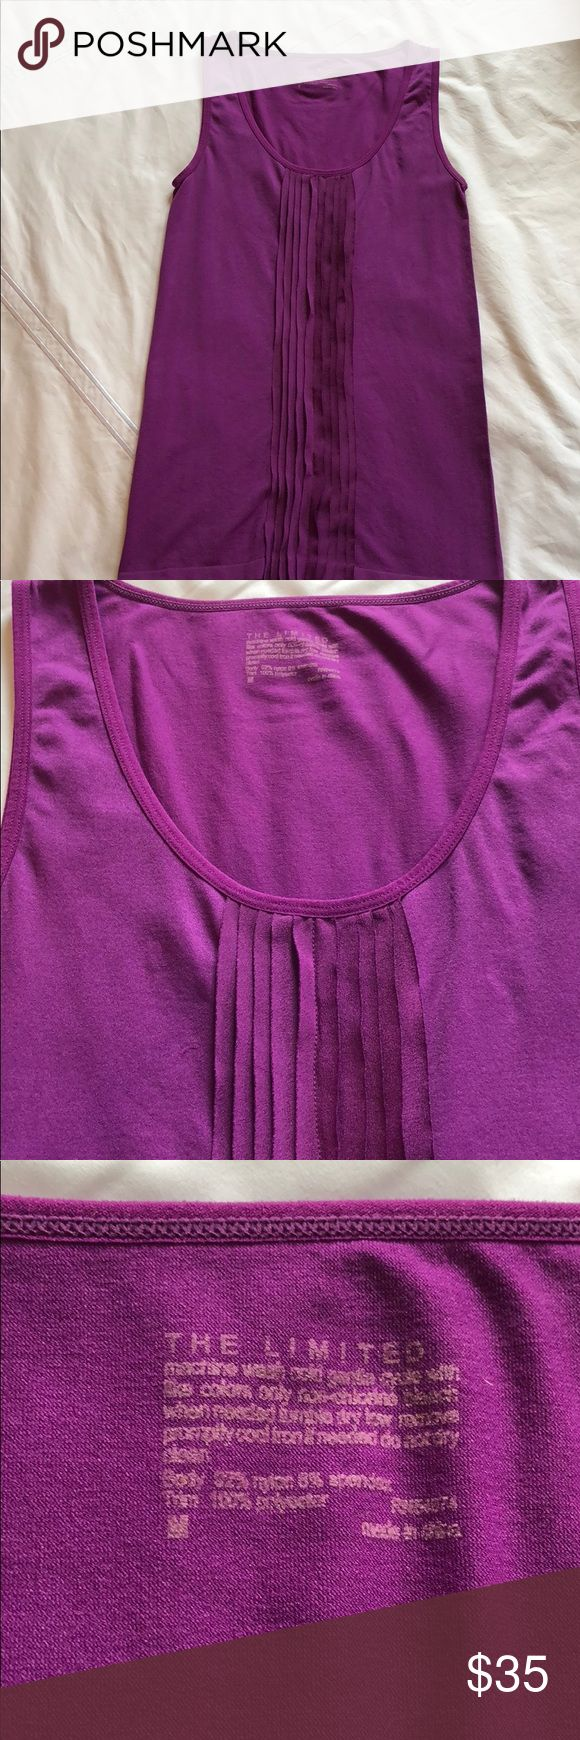 Purple Tank Top Beautiful purple tank top- just in time for spring and summer! Looks great under a blazer or cardigan at the office. Worn just once- I might not have worn it ever-I can't remember. It's in perfect, like new condition. The Limited Tops Tank Tops